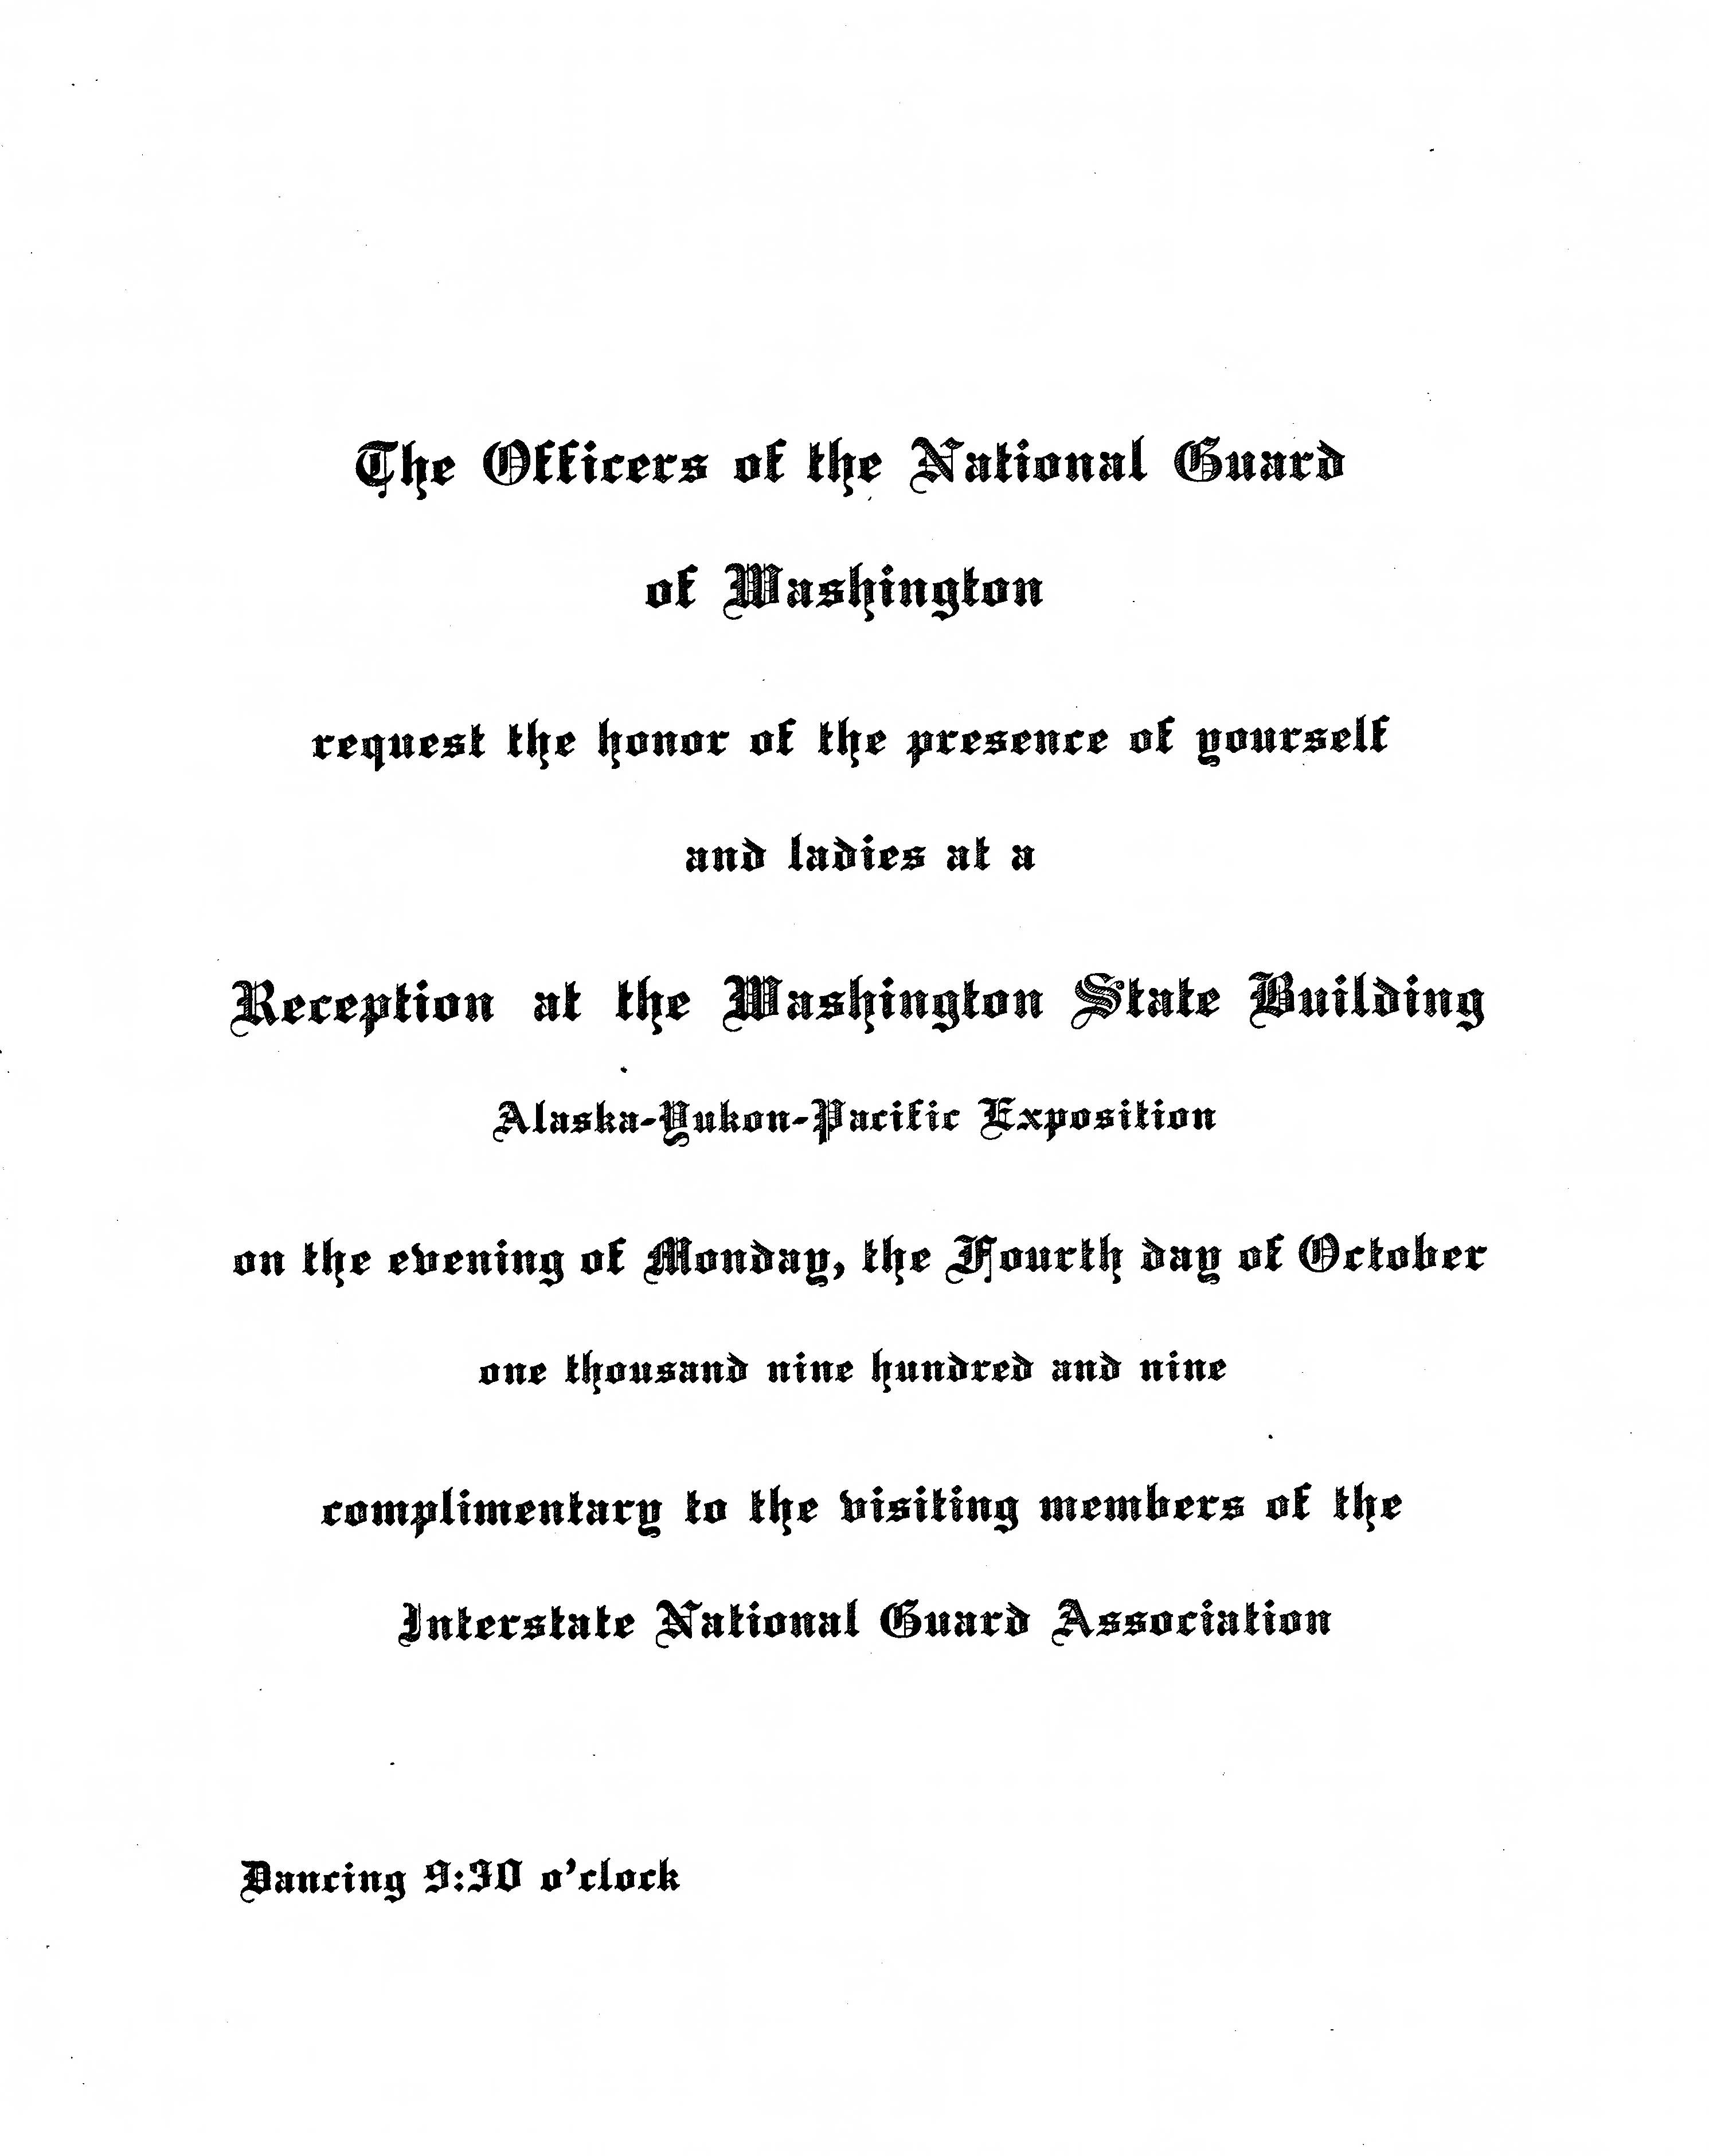 Invitation from the Officers of the National Guard of Washington to a reception for the Interstate National Guard Association at the Washington State Building on 4 October 1909